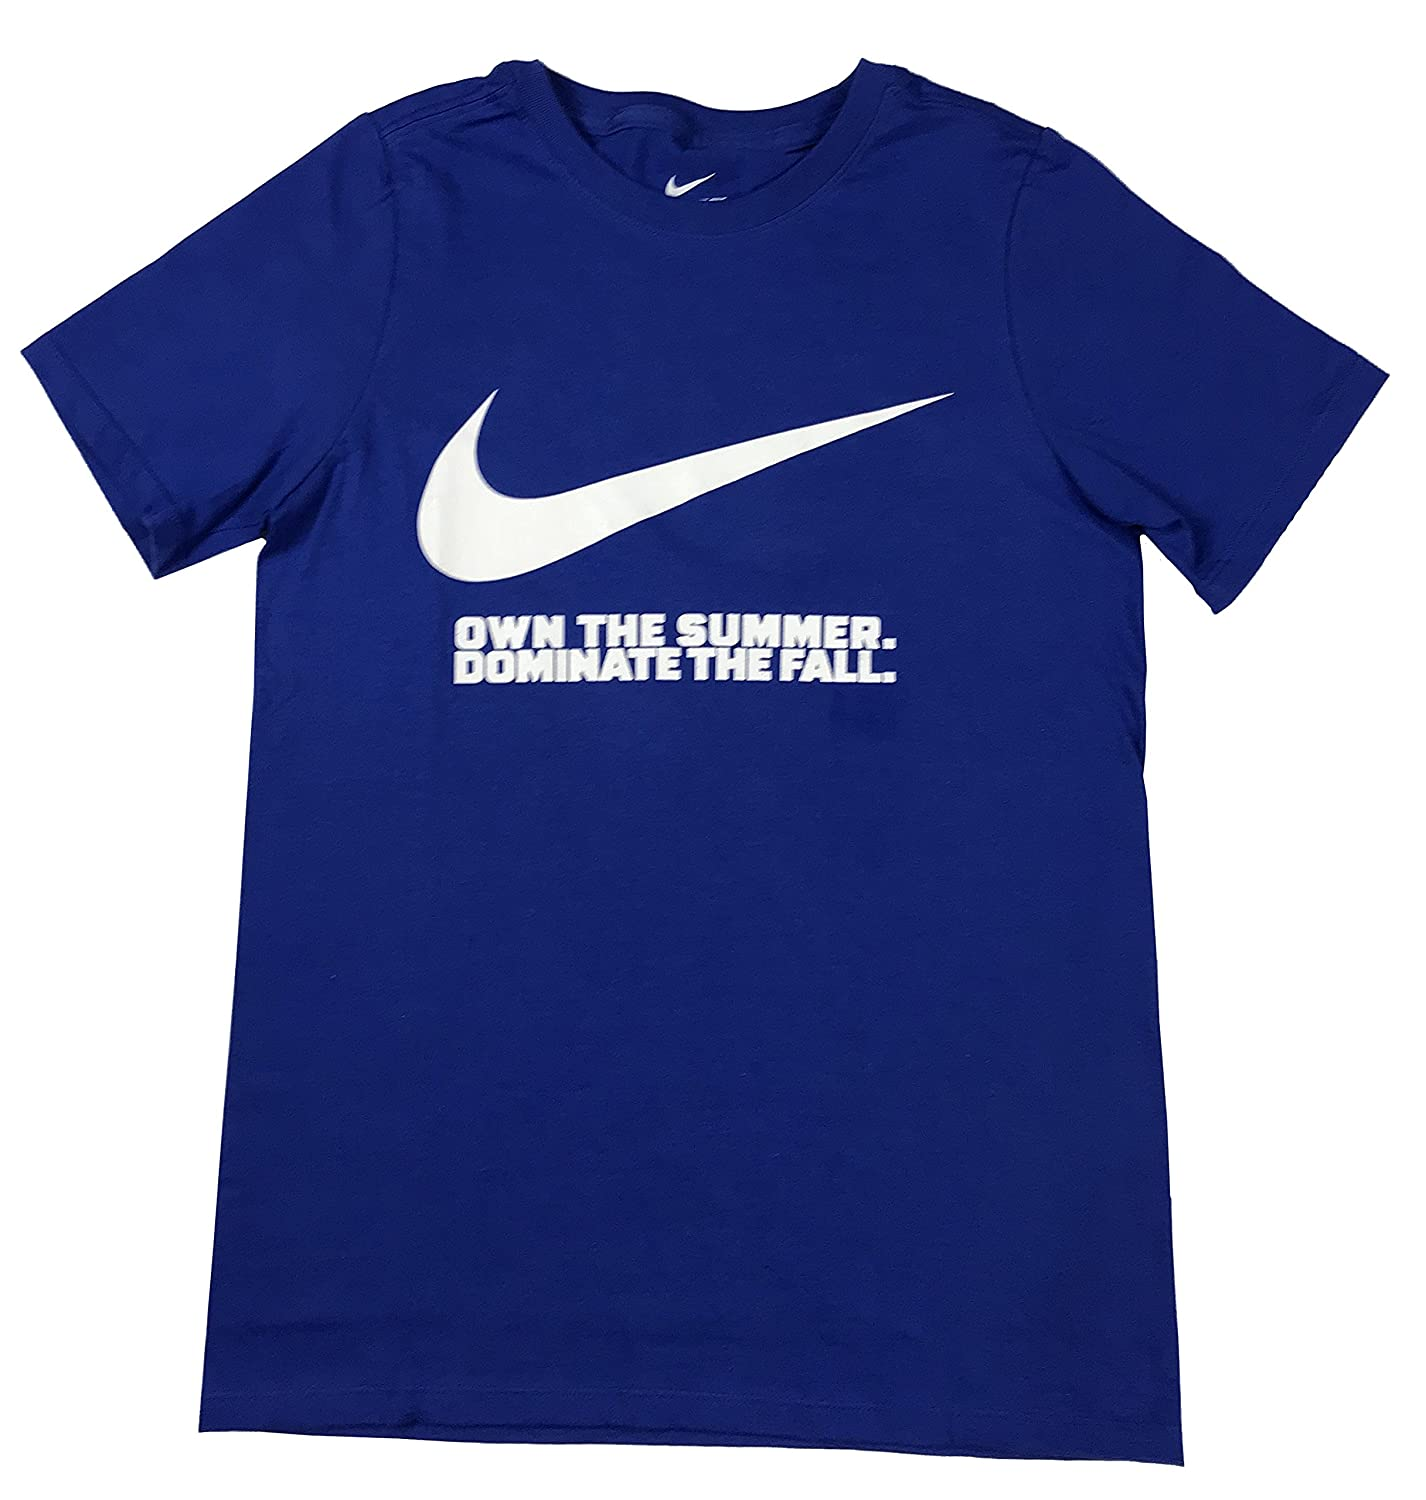 Game Royal//White, Medium Nike Boys Big Swoosh Own The Summer Graphic Cotton Shirt